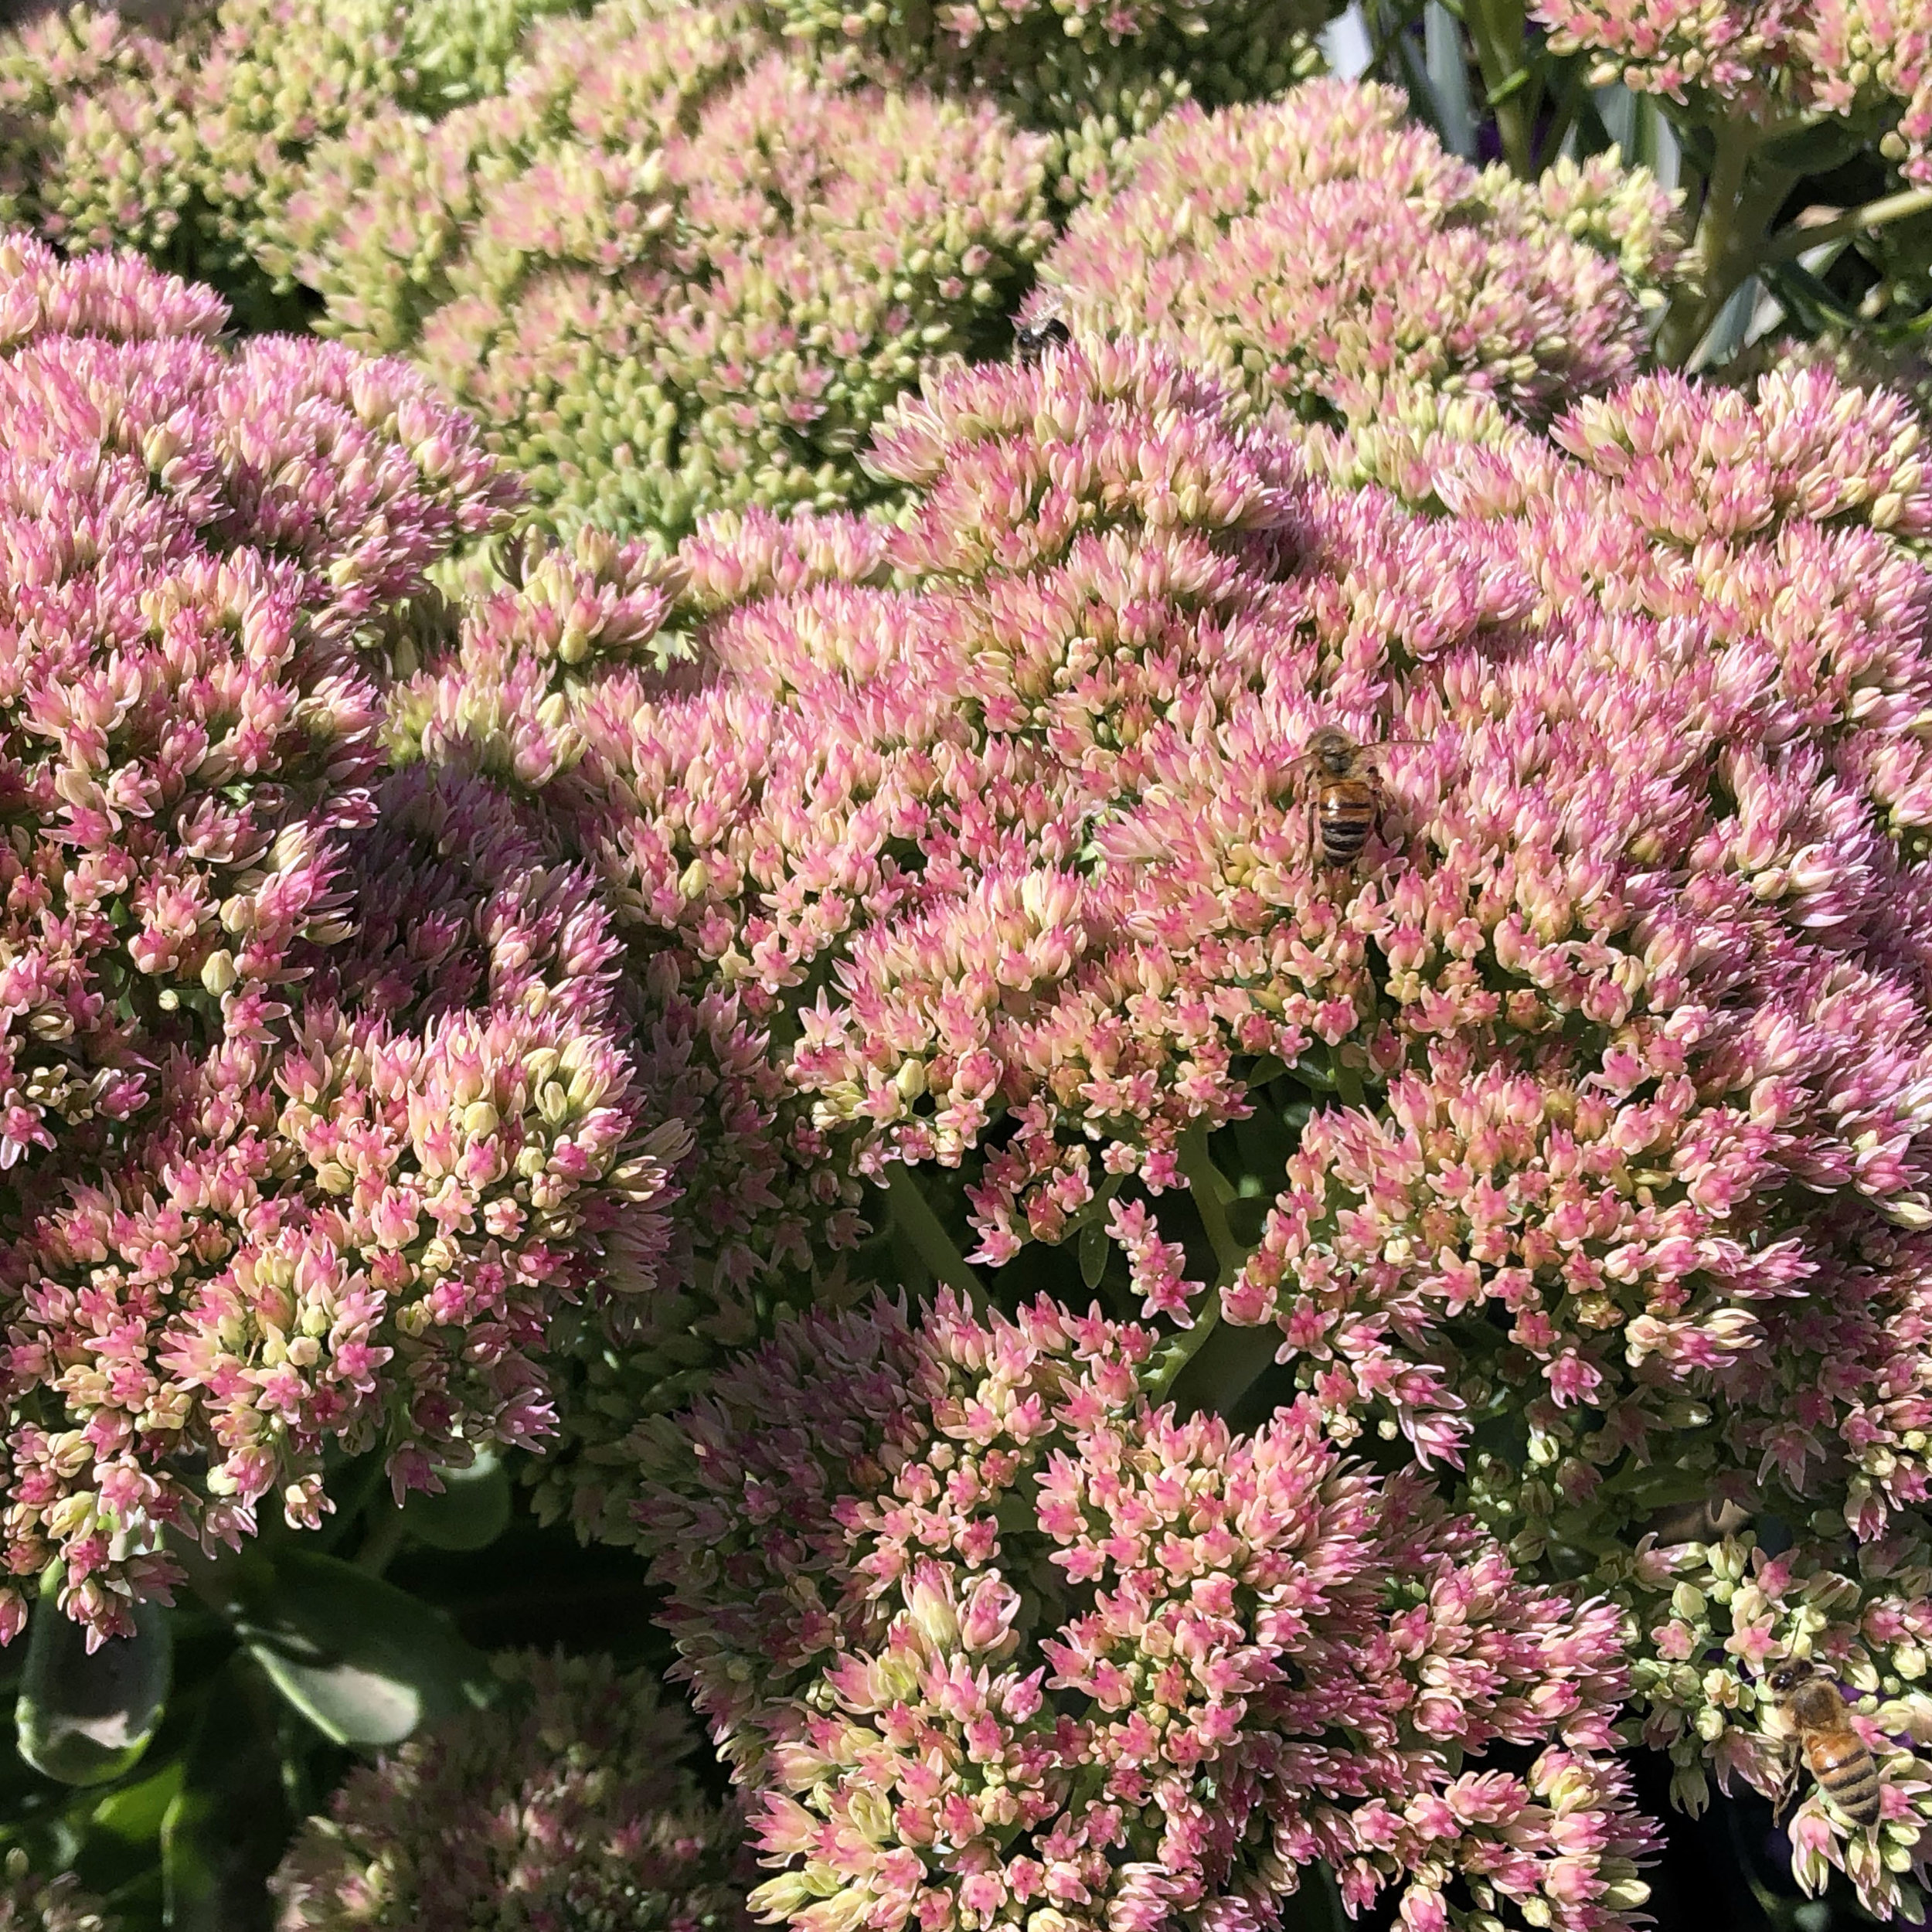 Sedum autumn joy.jpg